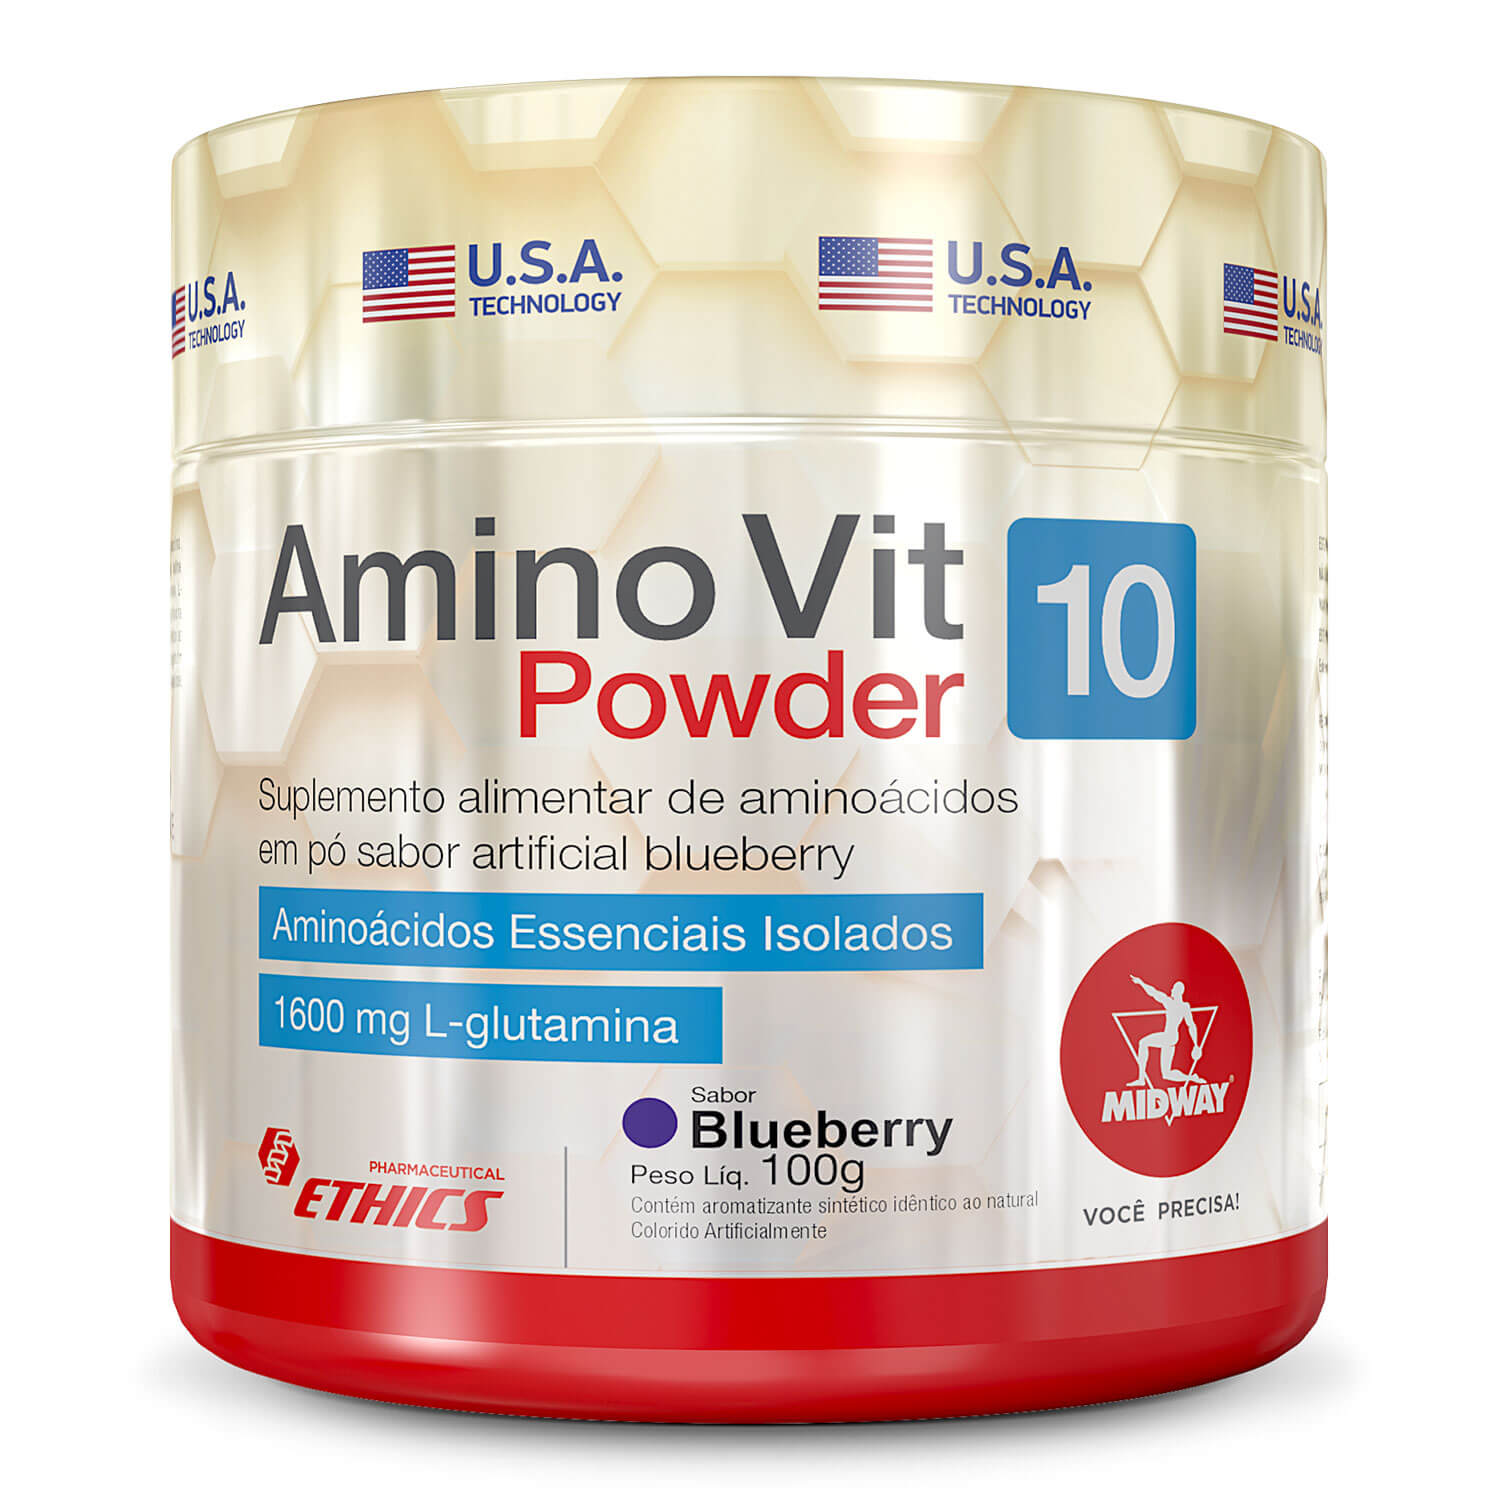 Amino Vit 10 Powder